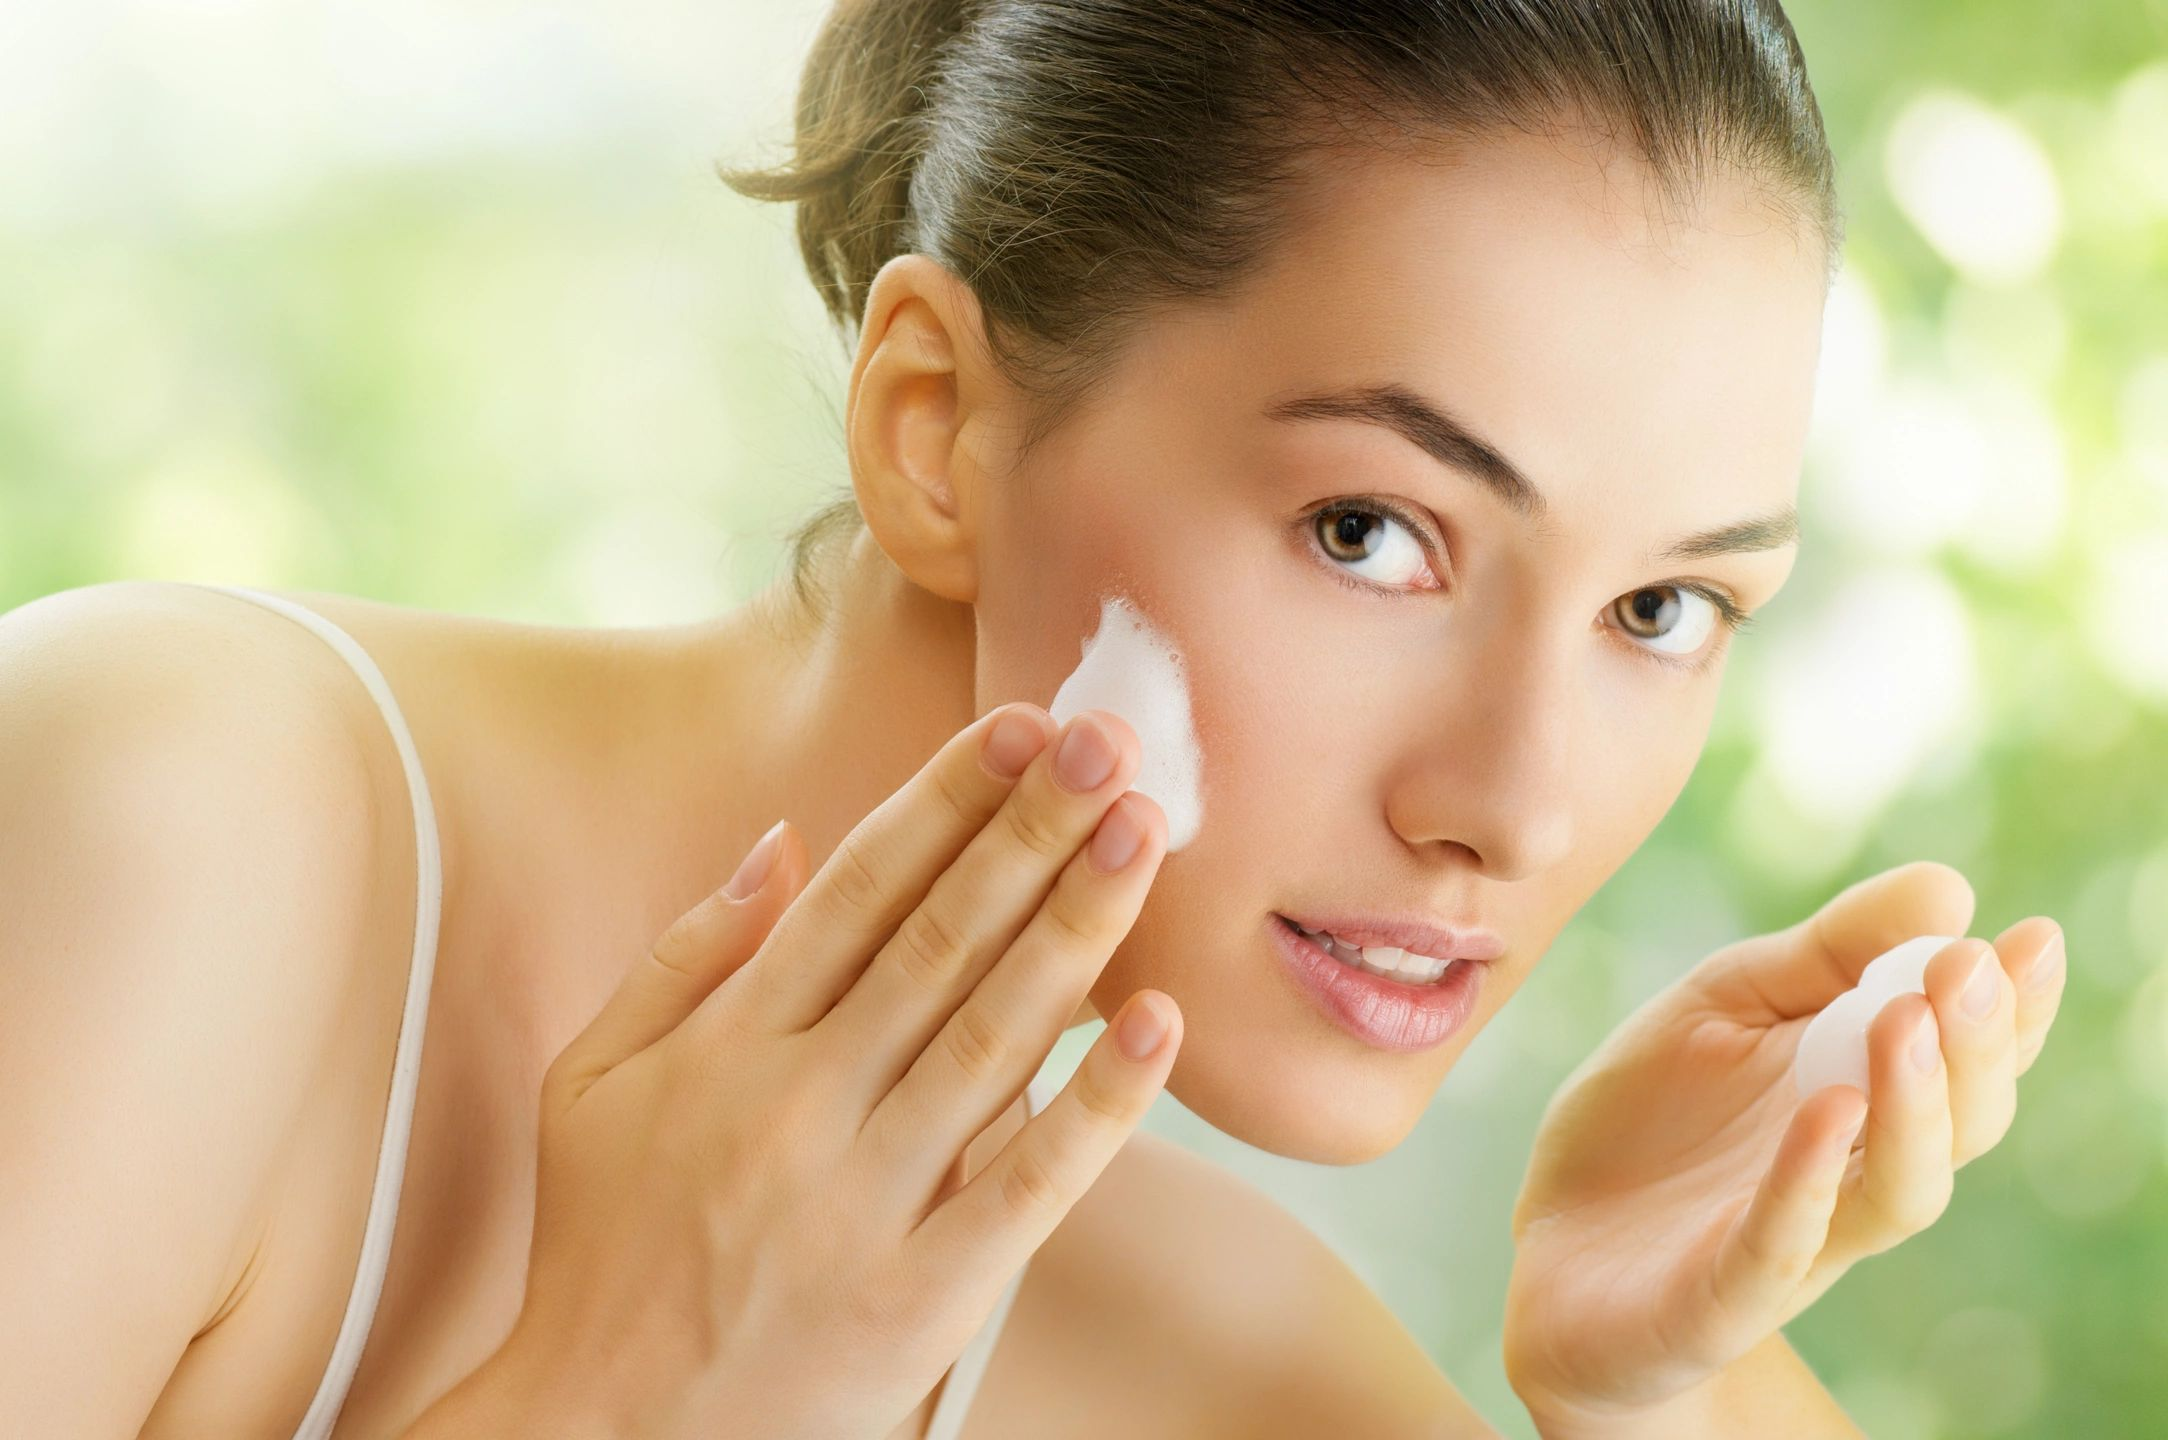 SKINCARE IS THE BEST CARE!